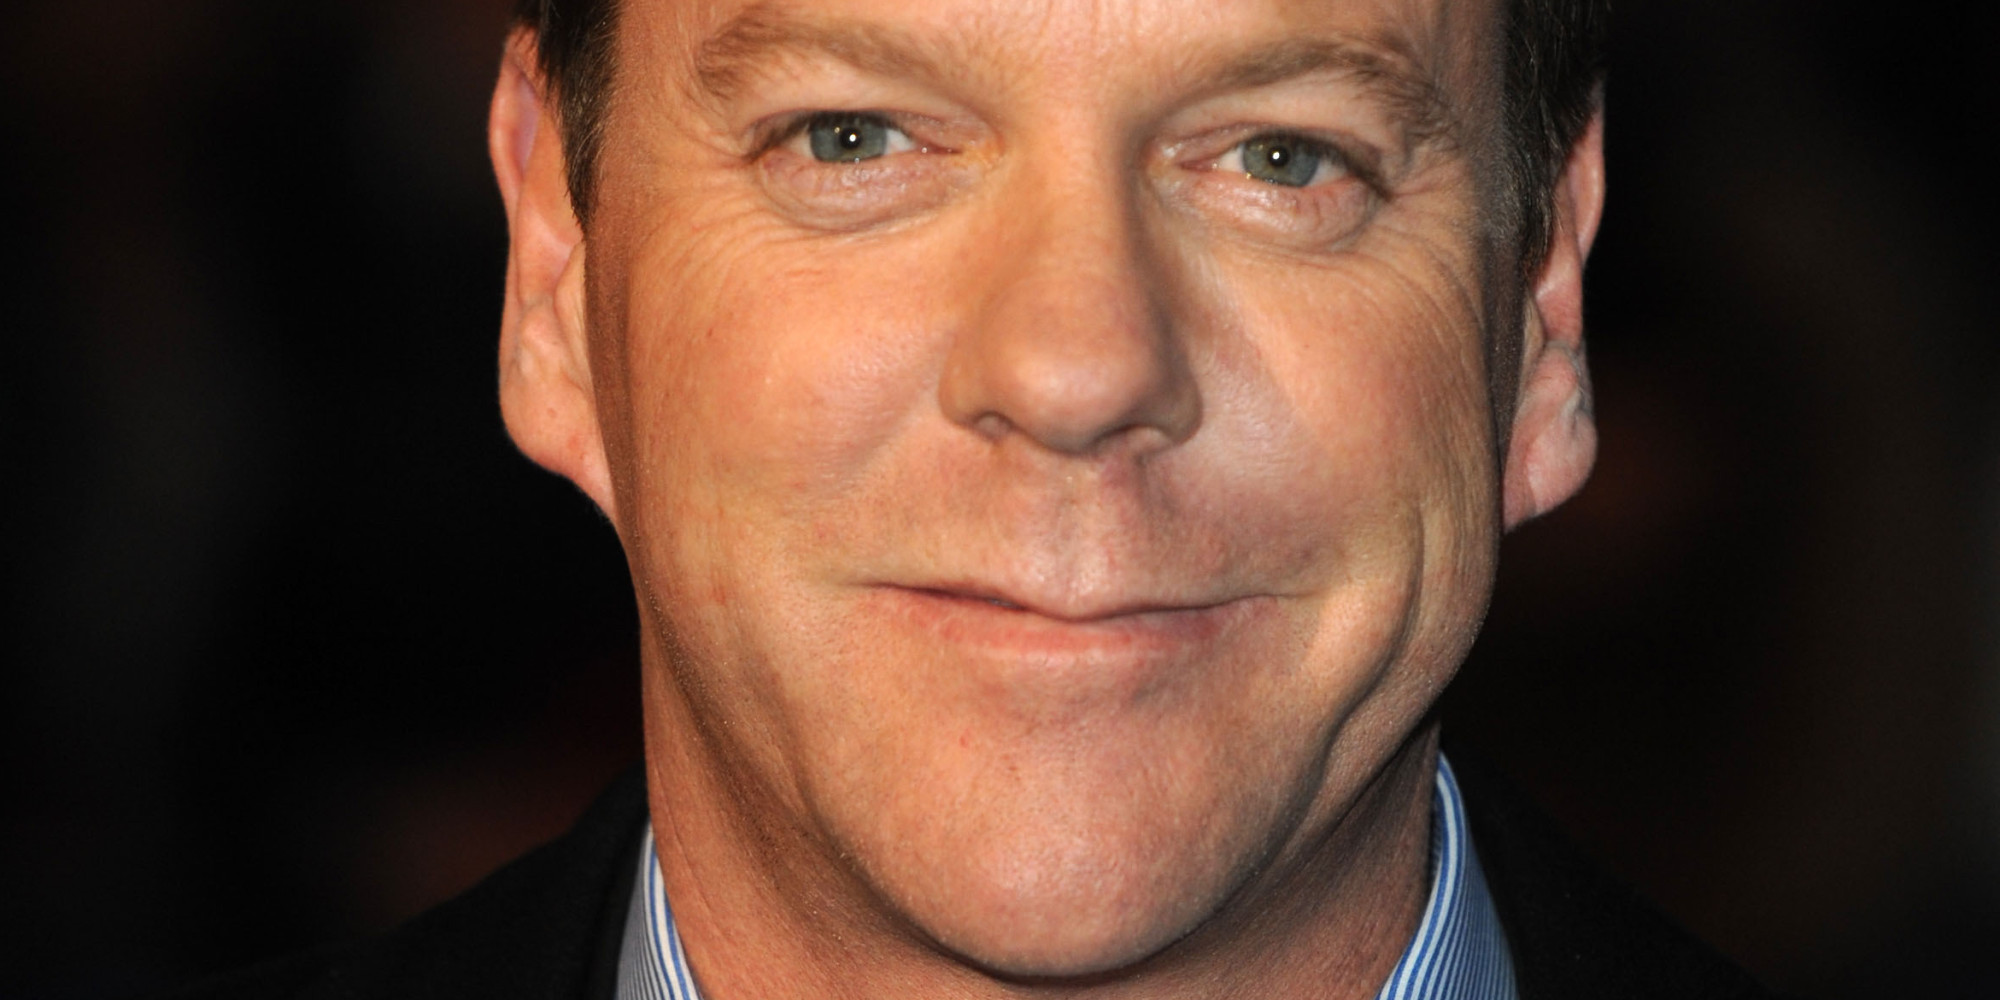 Embargoed to 0001 Friday February 6 File photo dated 11/03/09 of Kiefer Sutherland who has said he will not be tuning in to the new series of 24, admitting he has not watched himself on screen for almost 30 years.